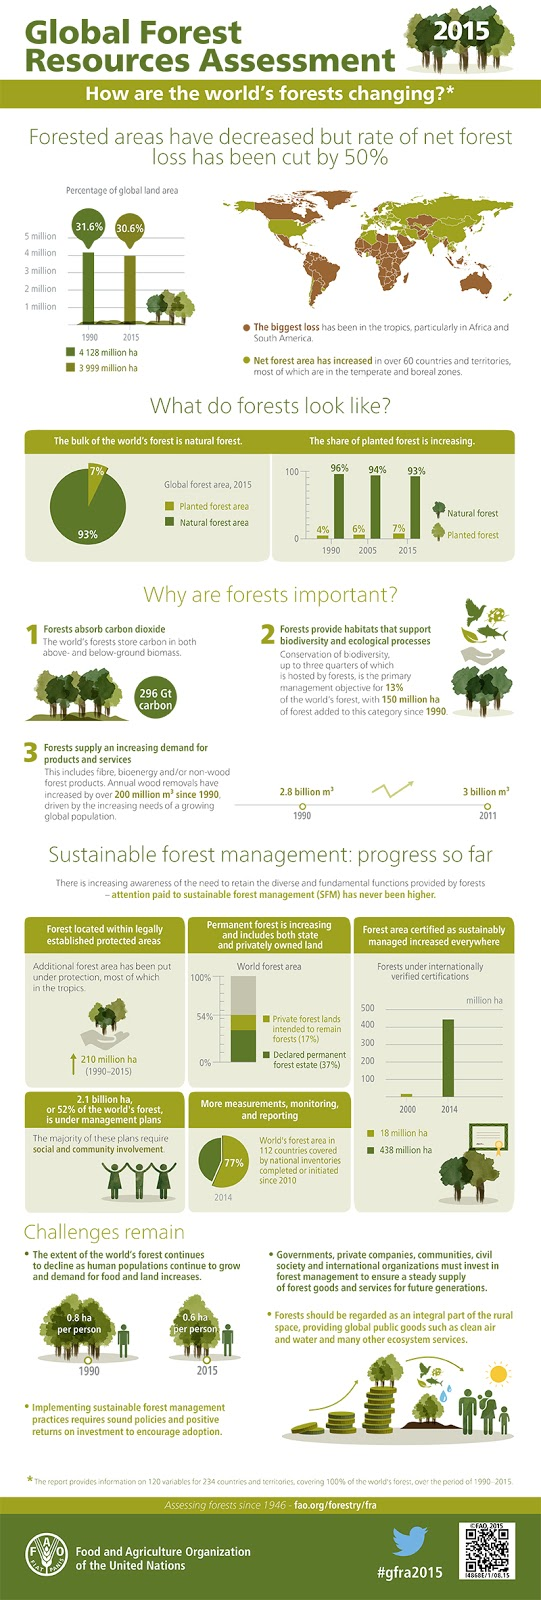 How are the world's forests changing?